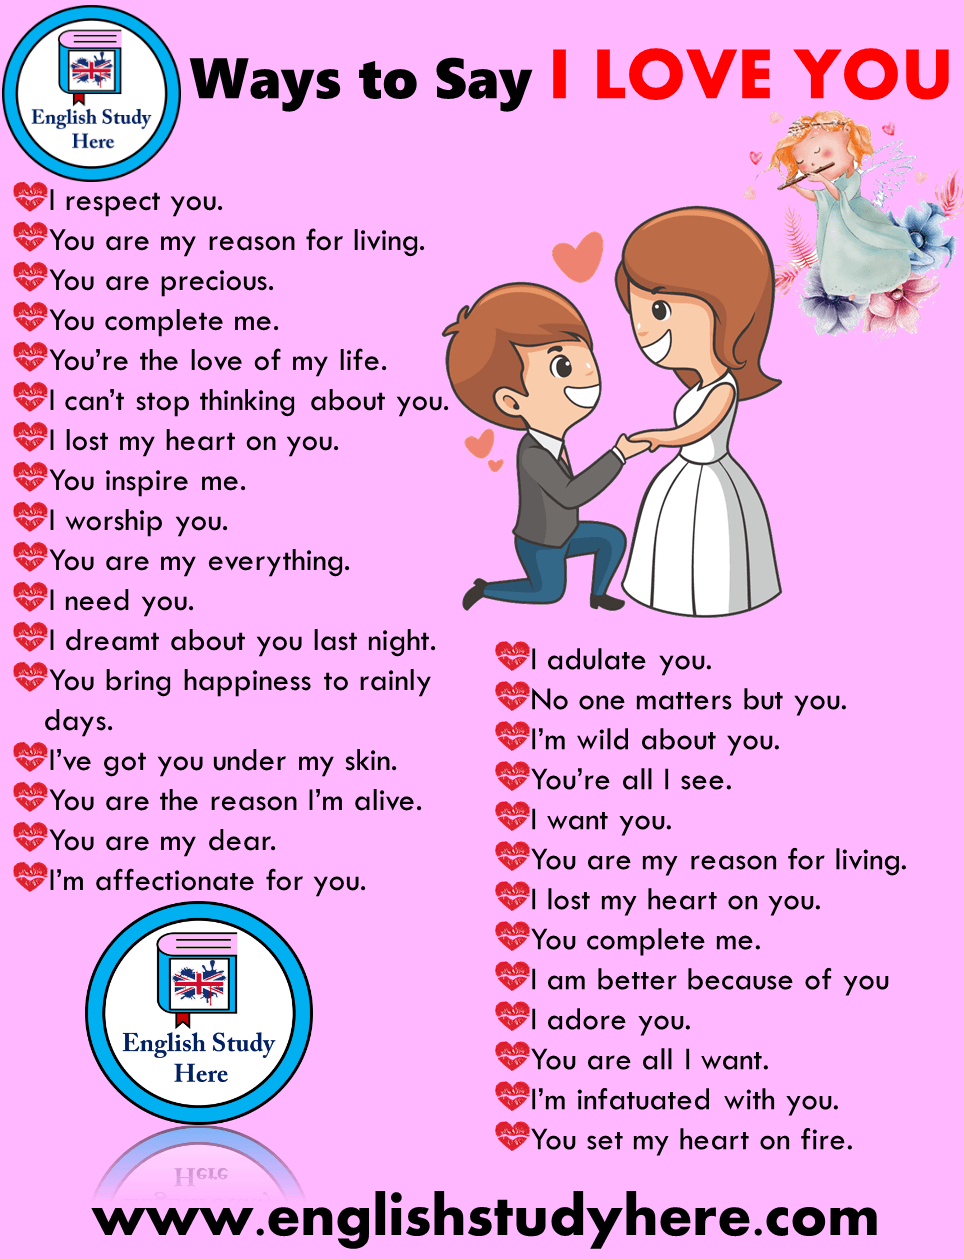 30 Different Ways to Say I LOVE YOU in English - English